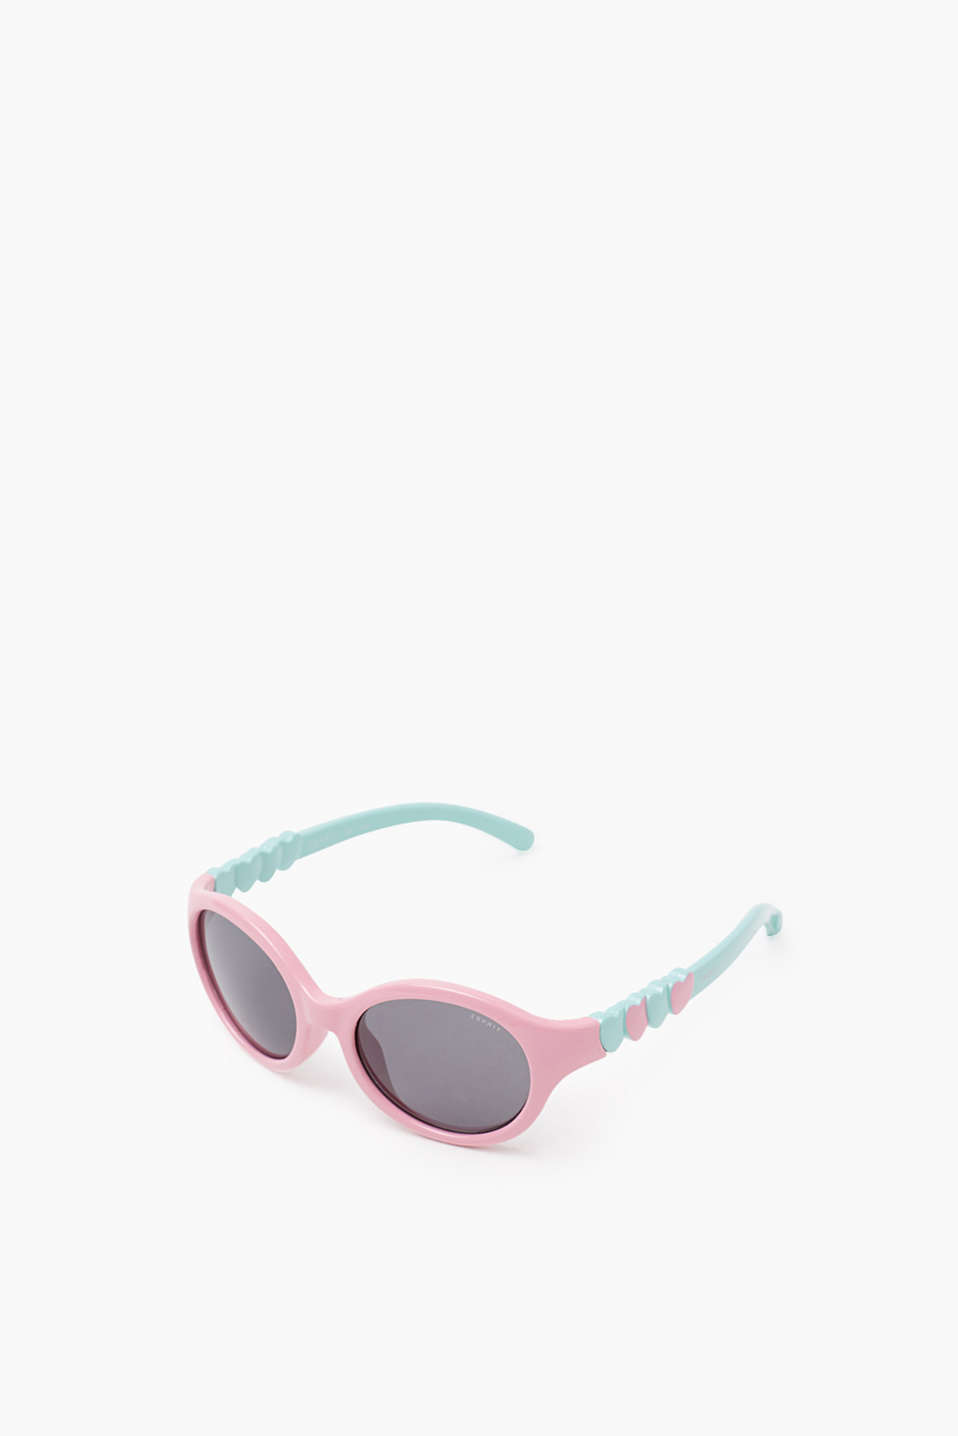 Esprit - Bicolour sunglasses with heart details